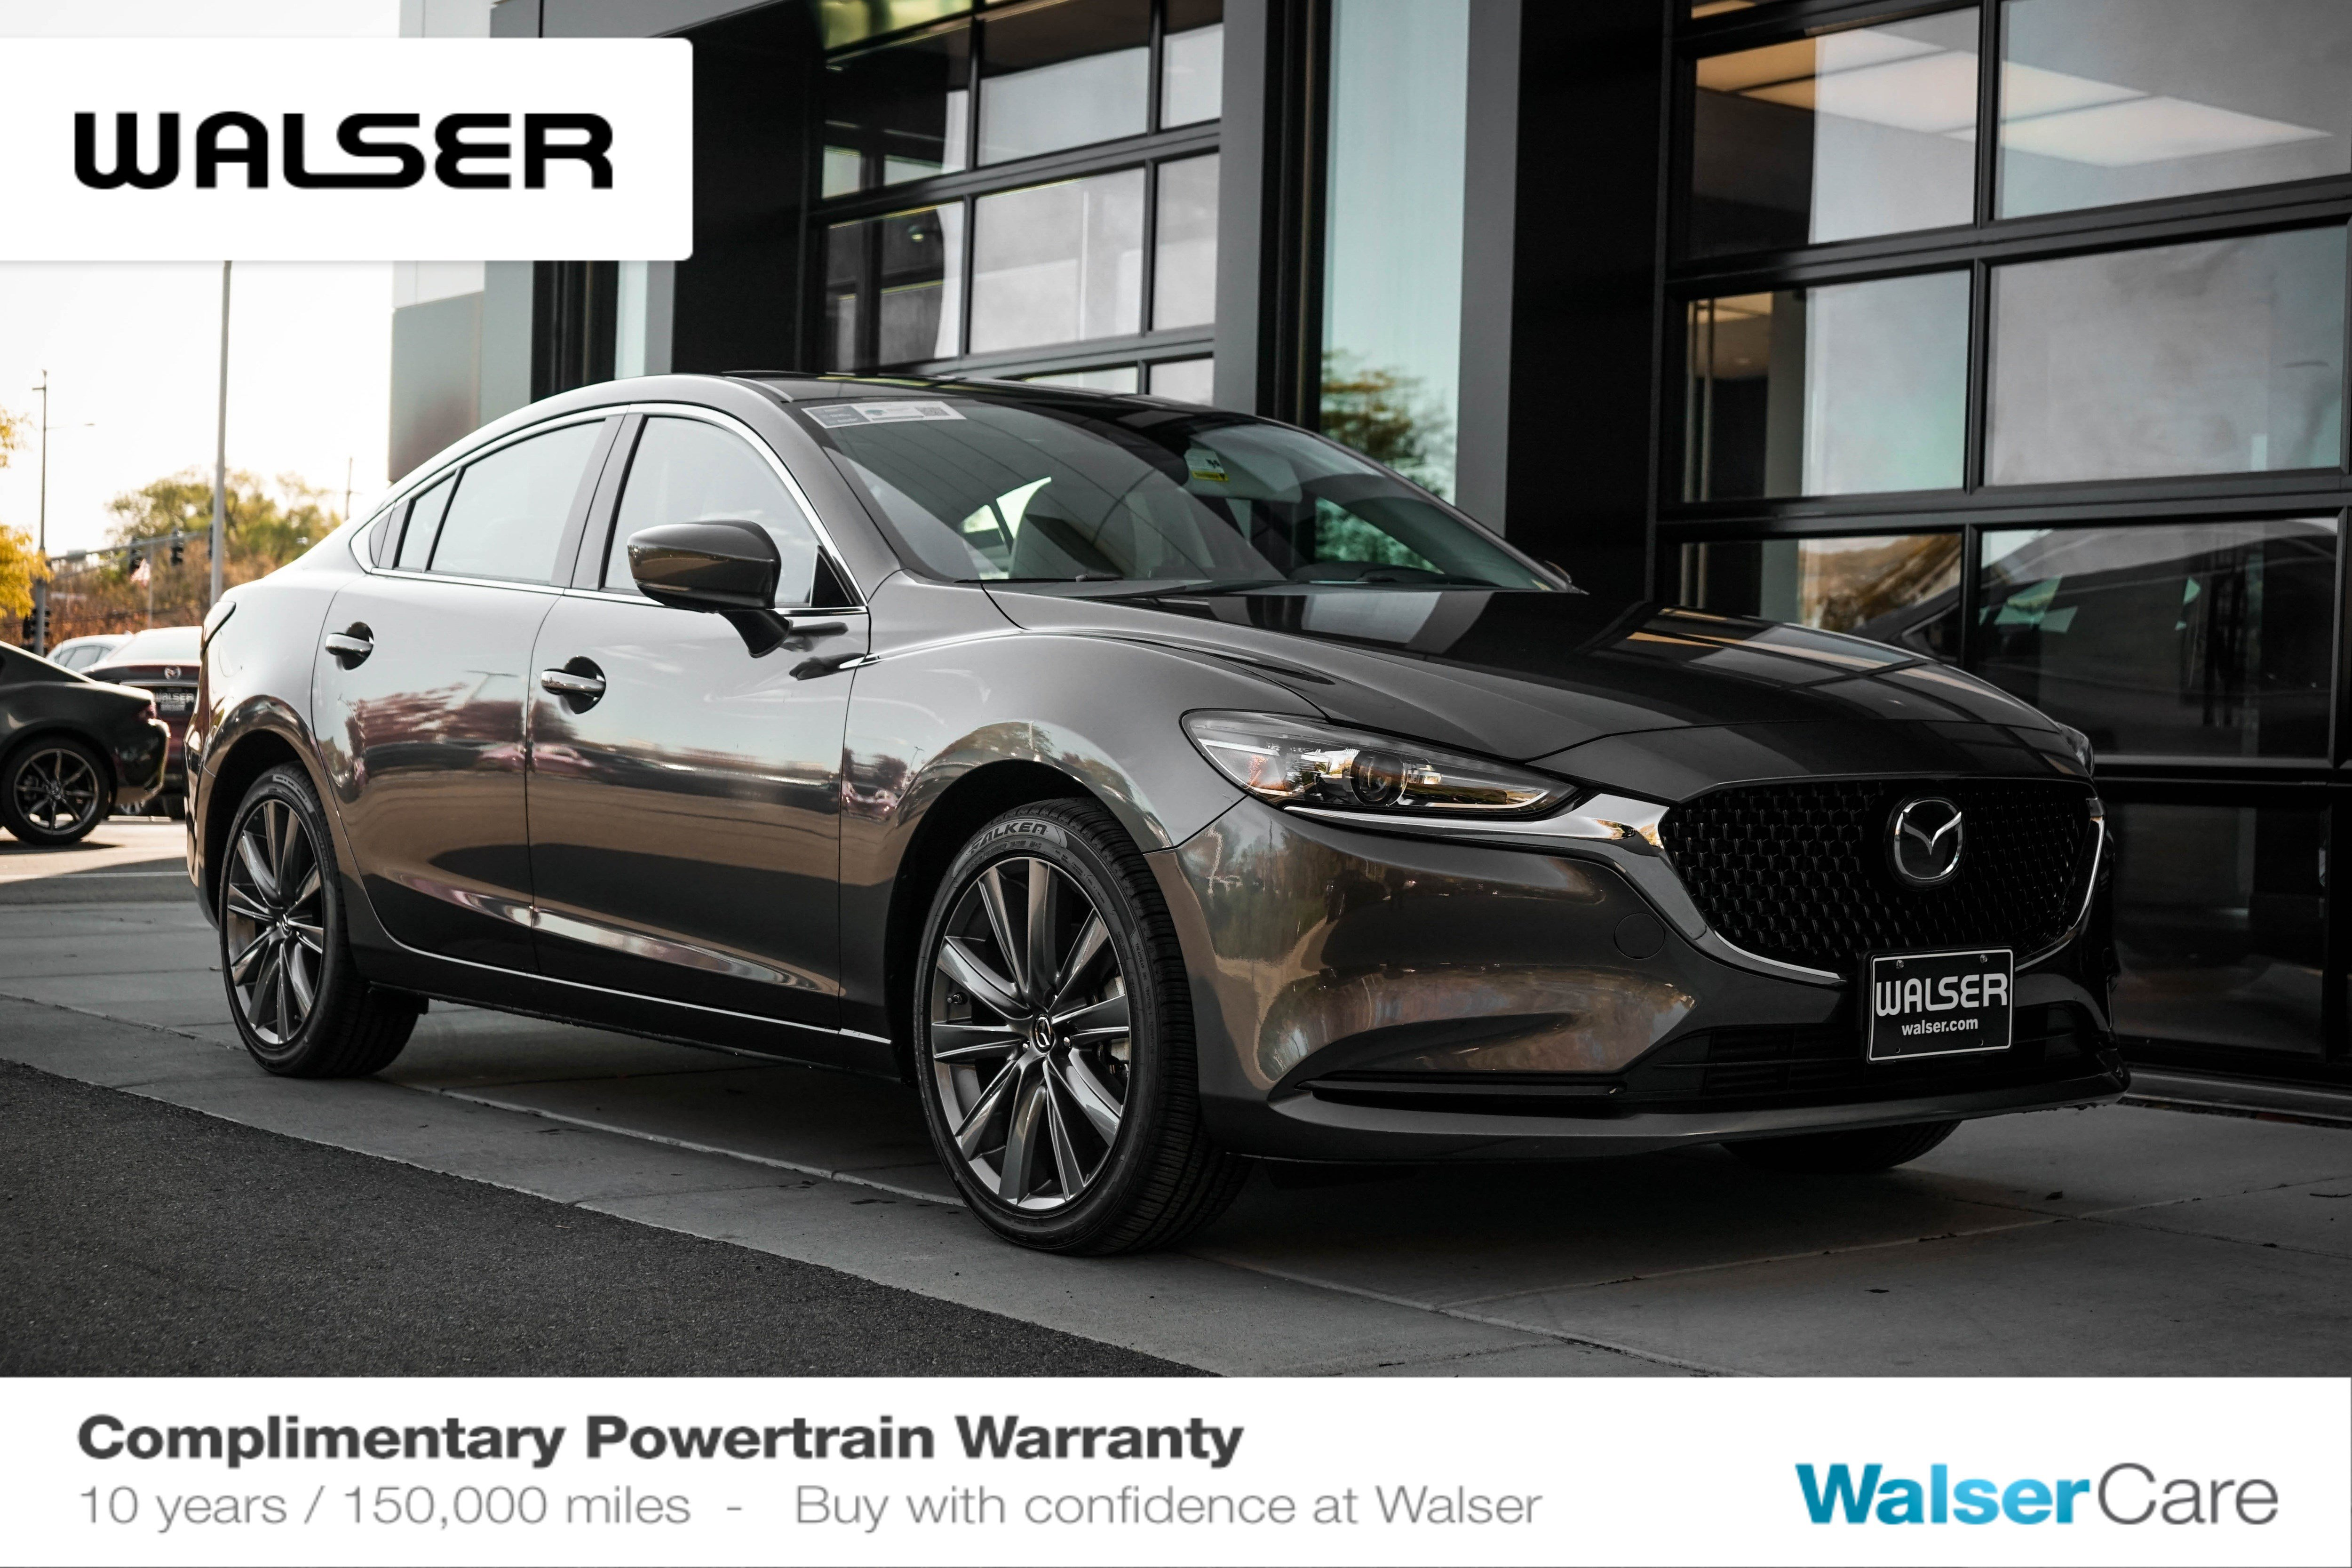 2019 Mazda Mazda6 Grand Touring Auto Lease Deals